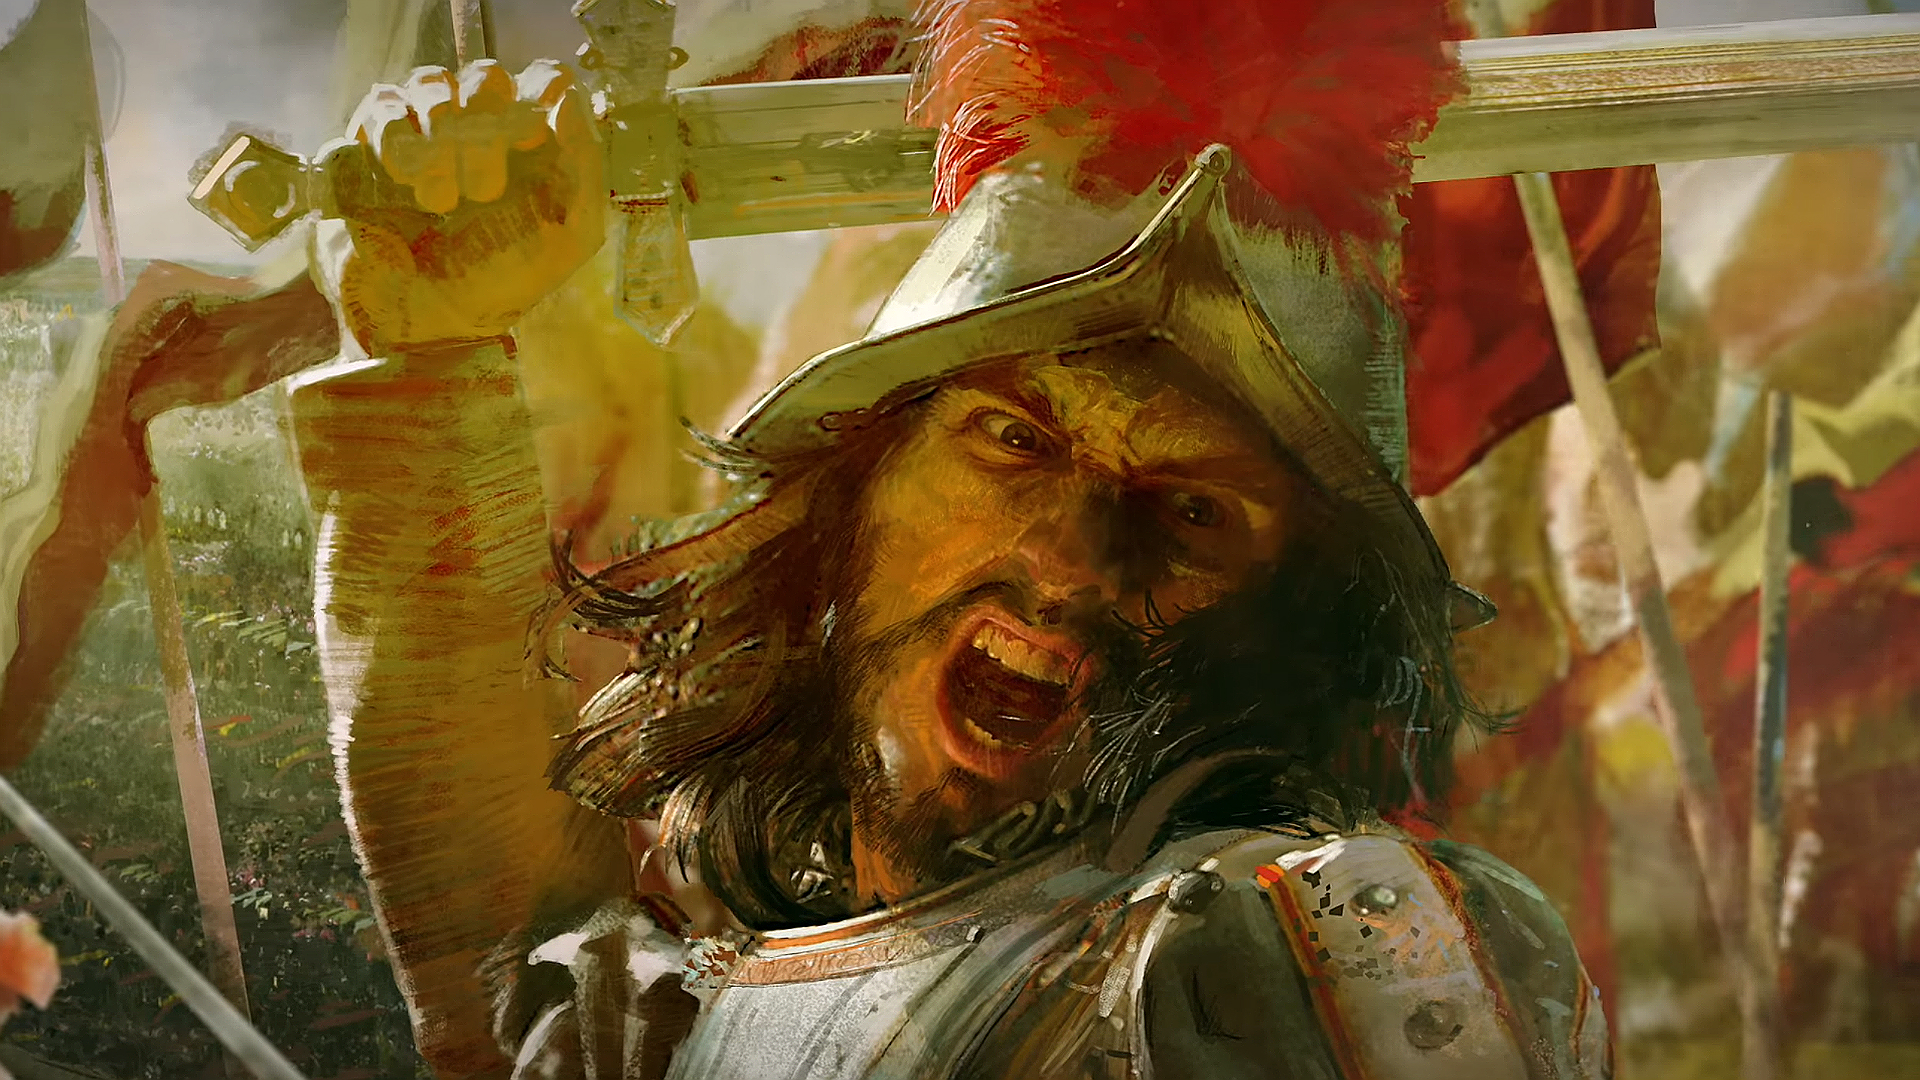 Age of Empires 4: release date, trailer, gameplay, nations – all the latest details